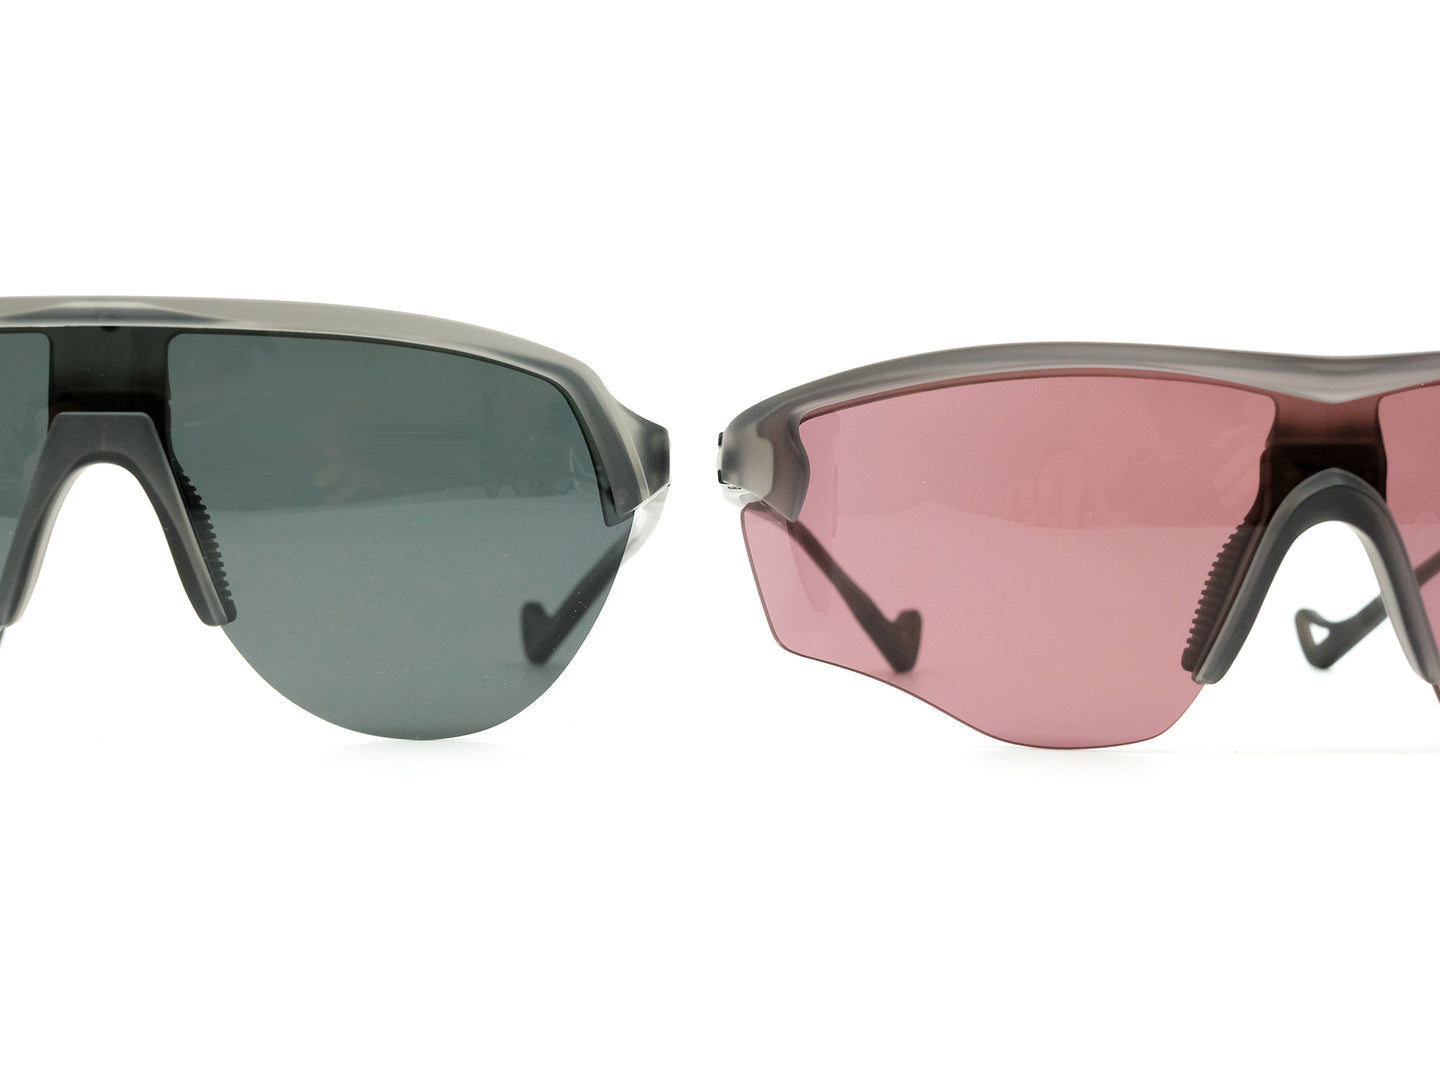 district vision districtvision sunnies sunglasses japanese acetate